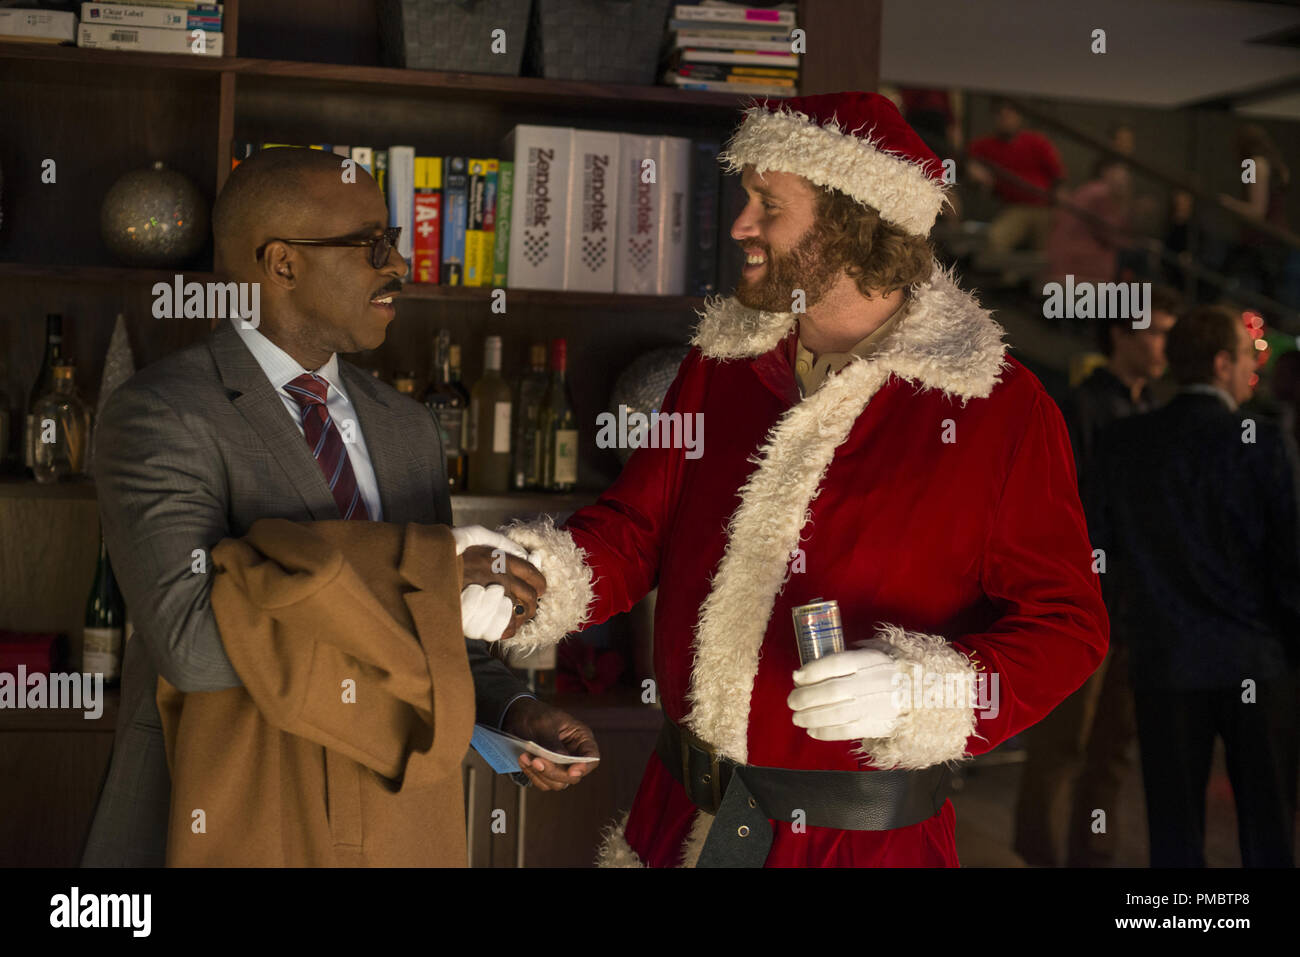 L-R: Courtney B. Vance as Walter, T.J. Miller as Clay Vanstone in ...